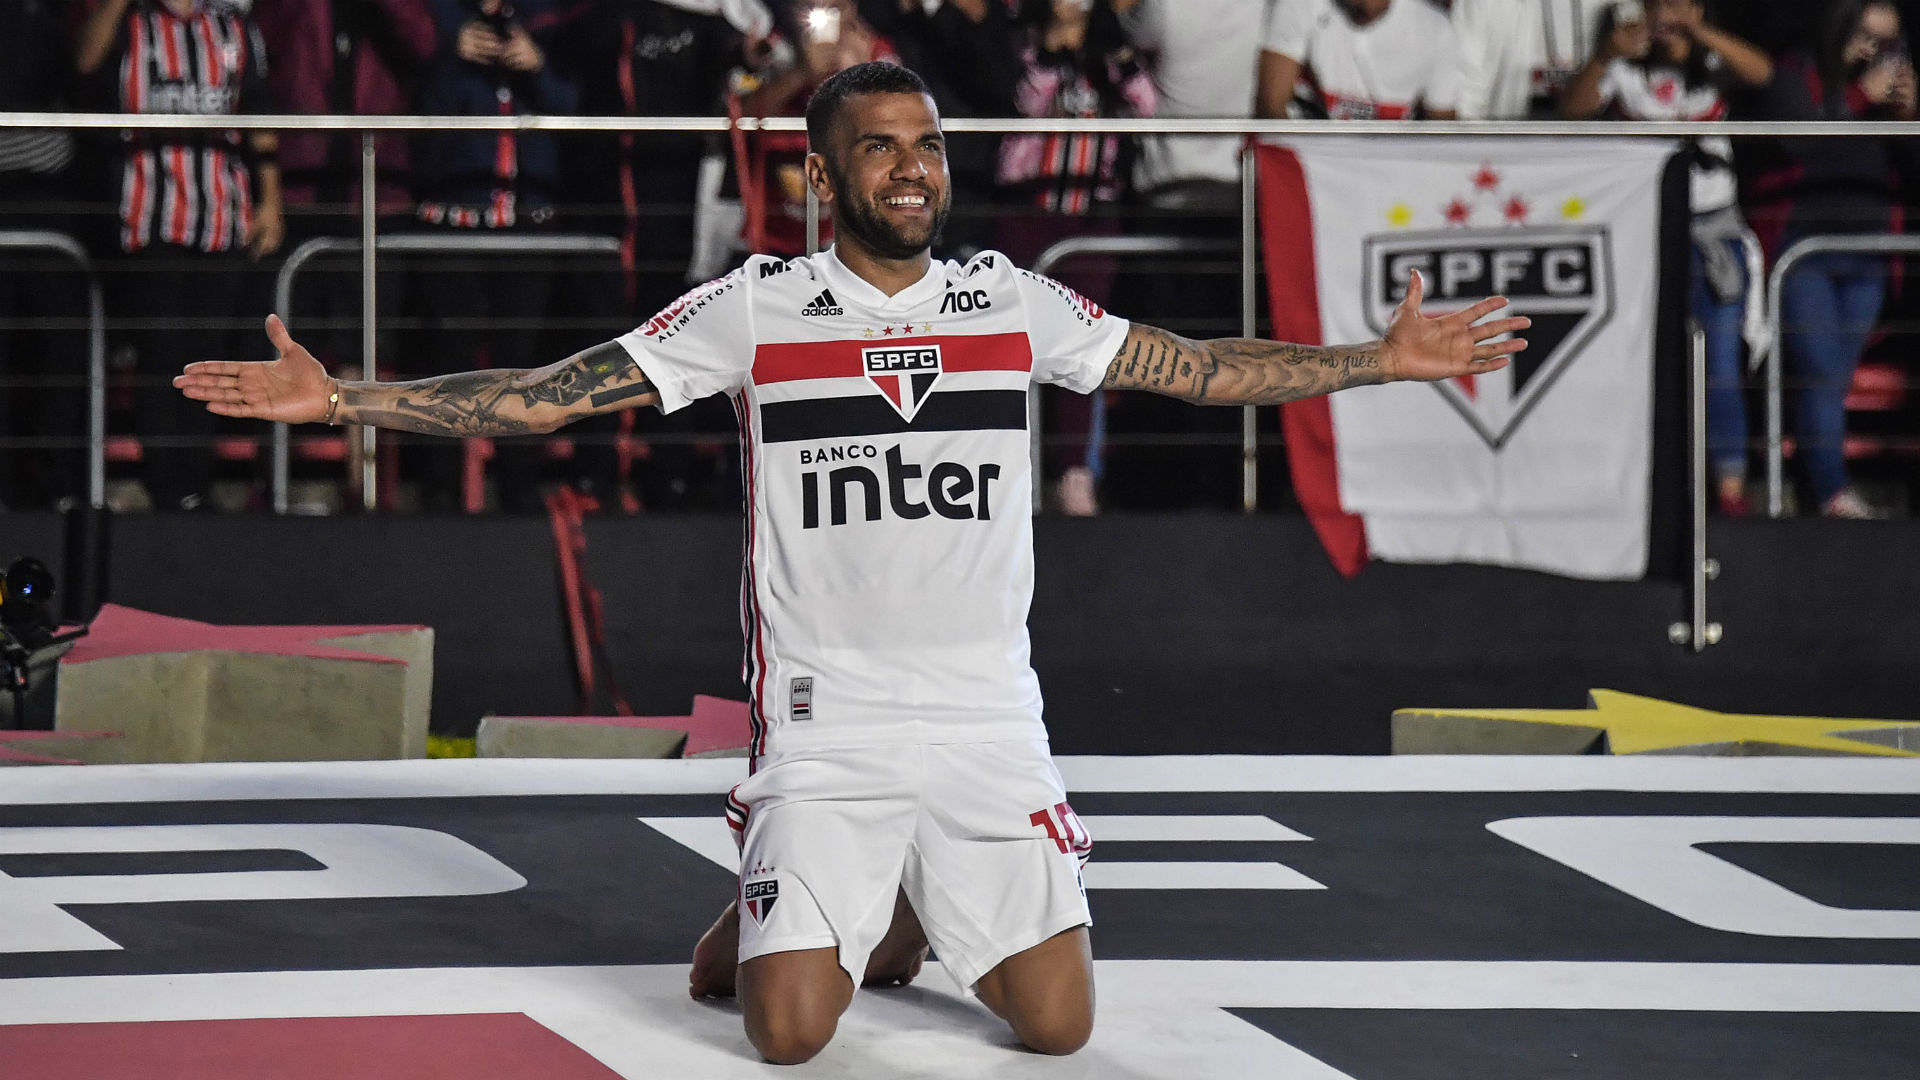 Dani Alves Eyes 2022 World Cup And Wants To Make History With Sao